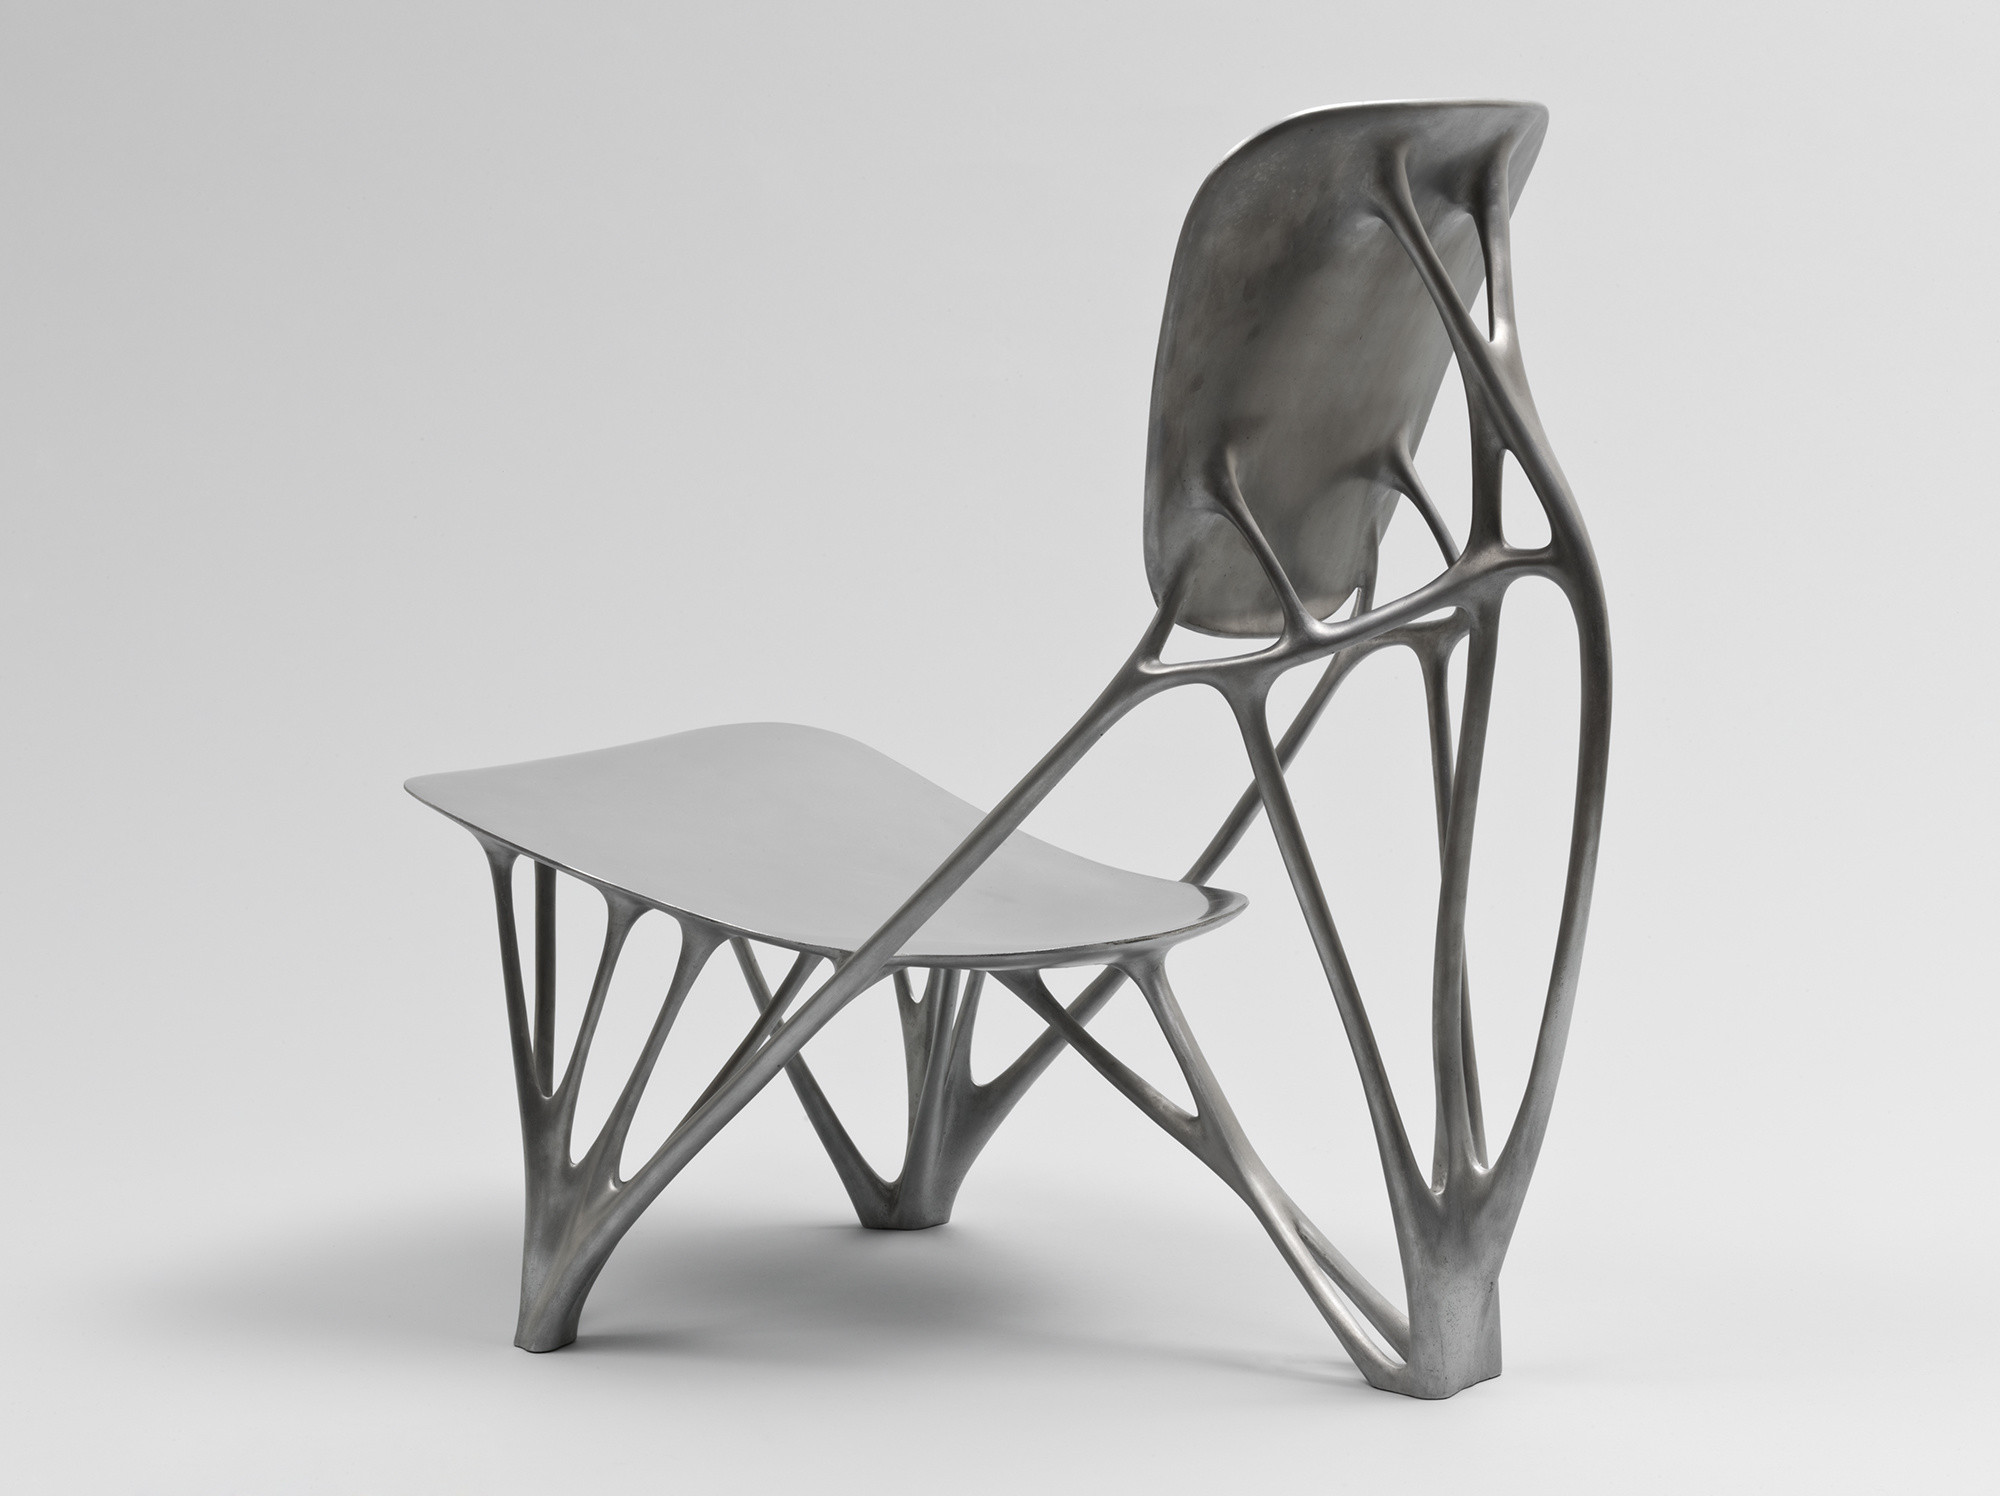 Joris Laarman. Bone Chair. 2006. Aluminum. Manufactured by Joris Laarman Studio, The Netherlands. The Museum of Modern Art. Gift of the Fund for the Twenty-First Century